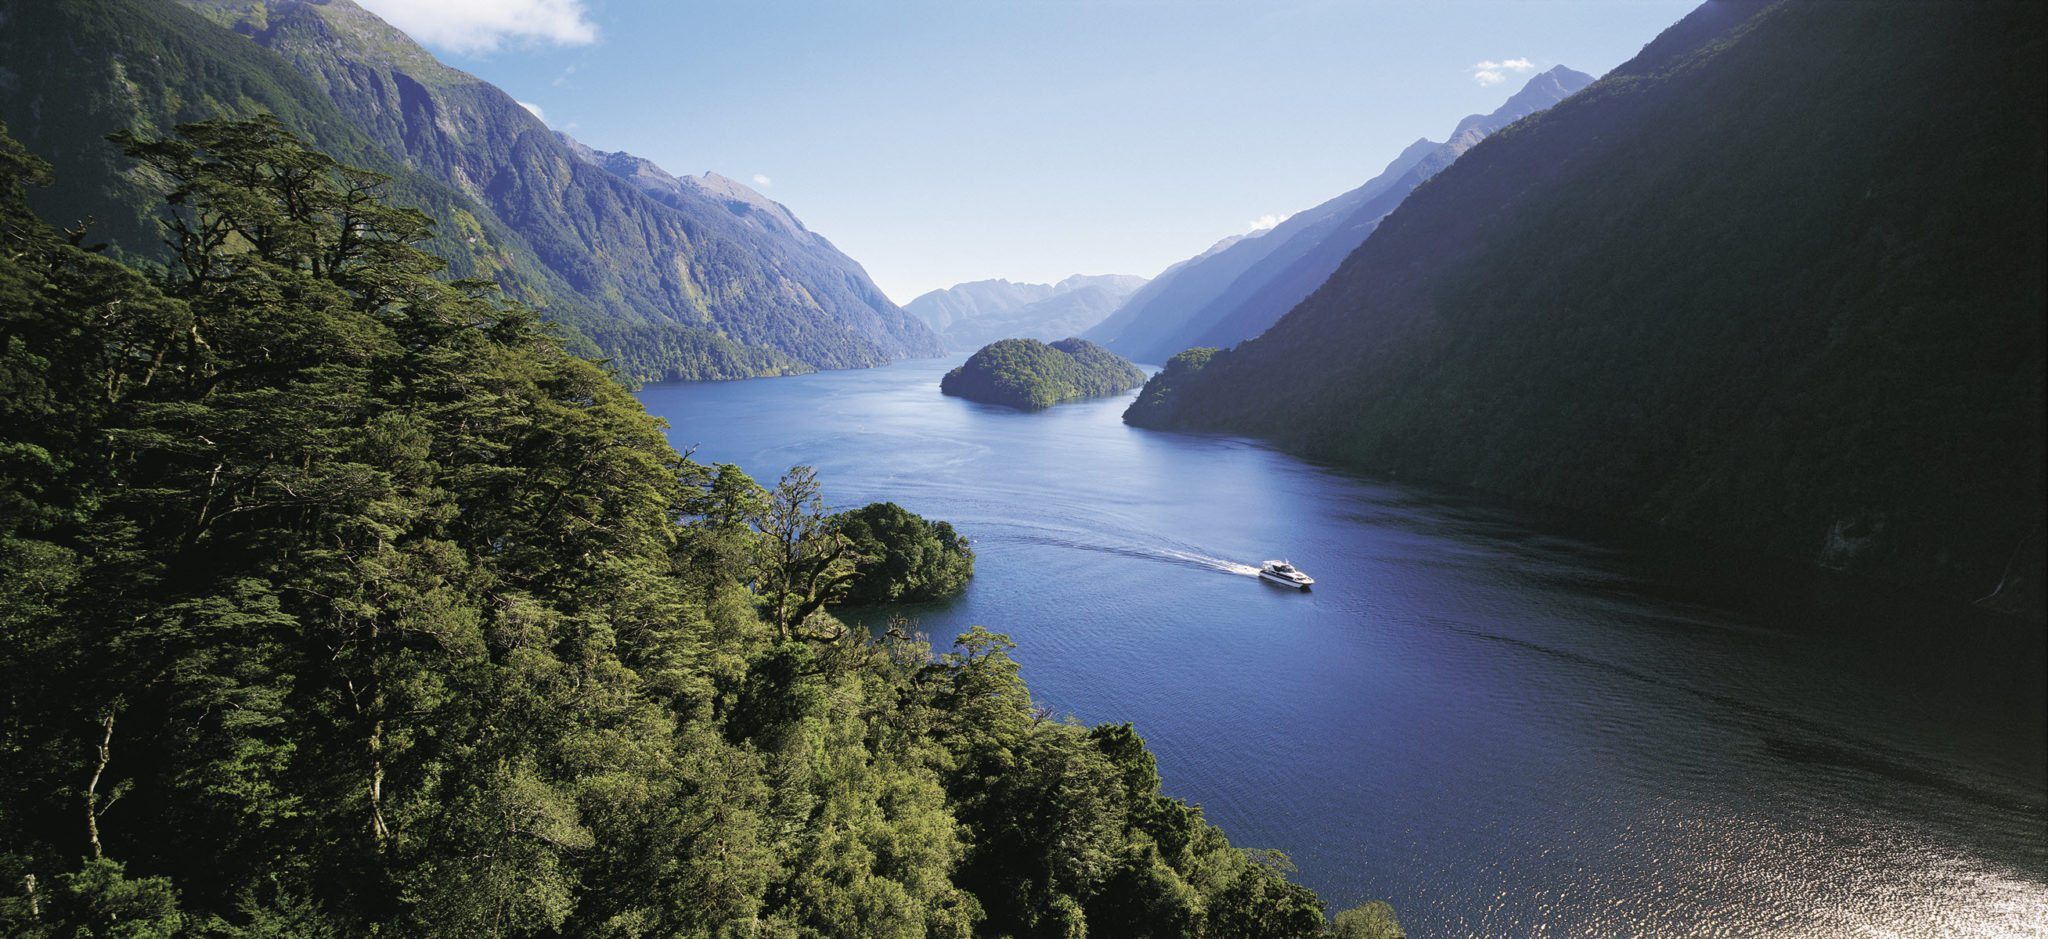 Boat making its way through the Doubtful Sound